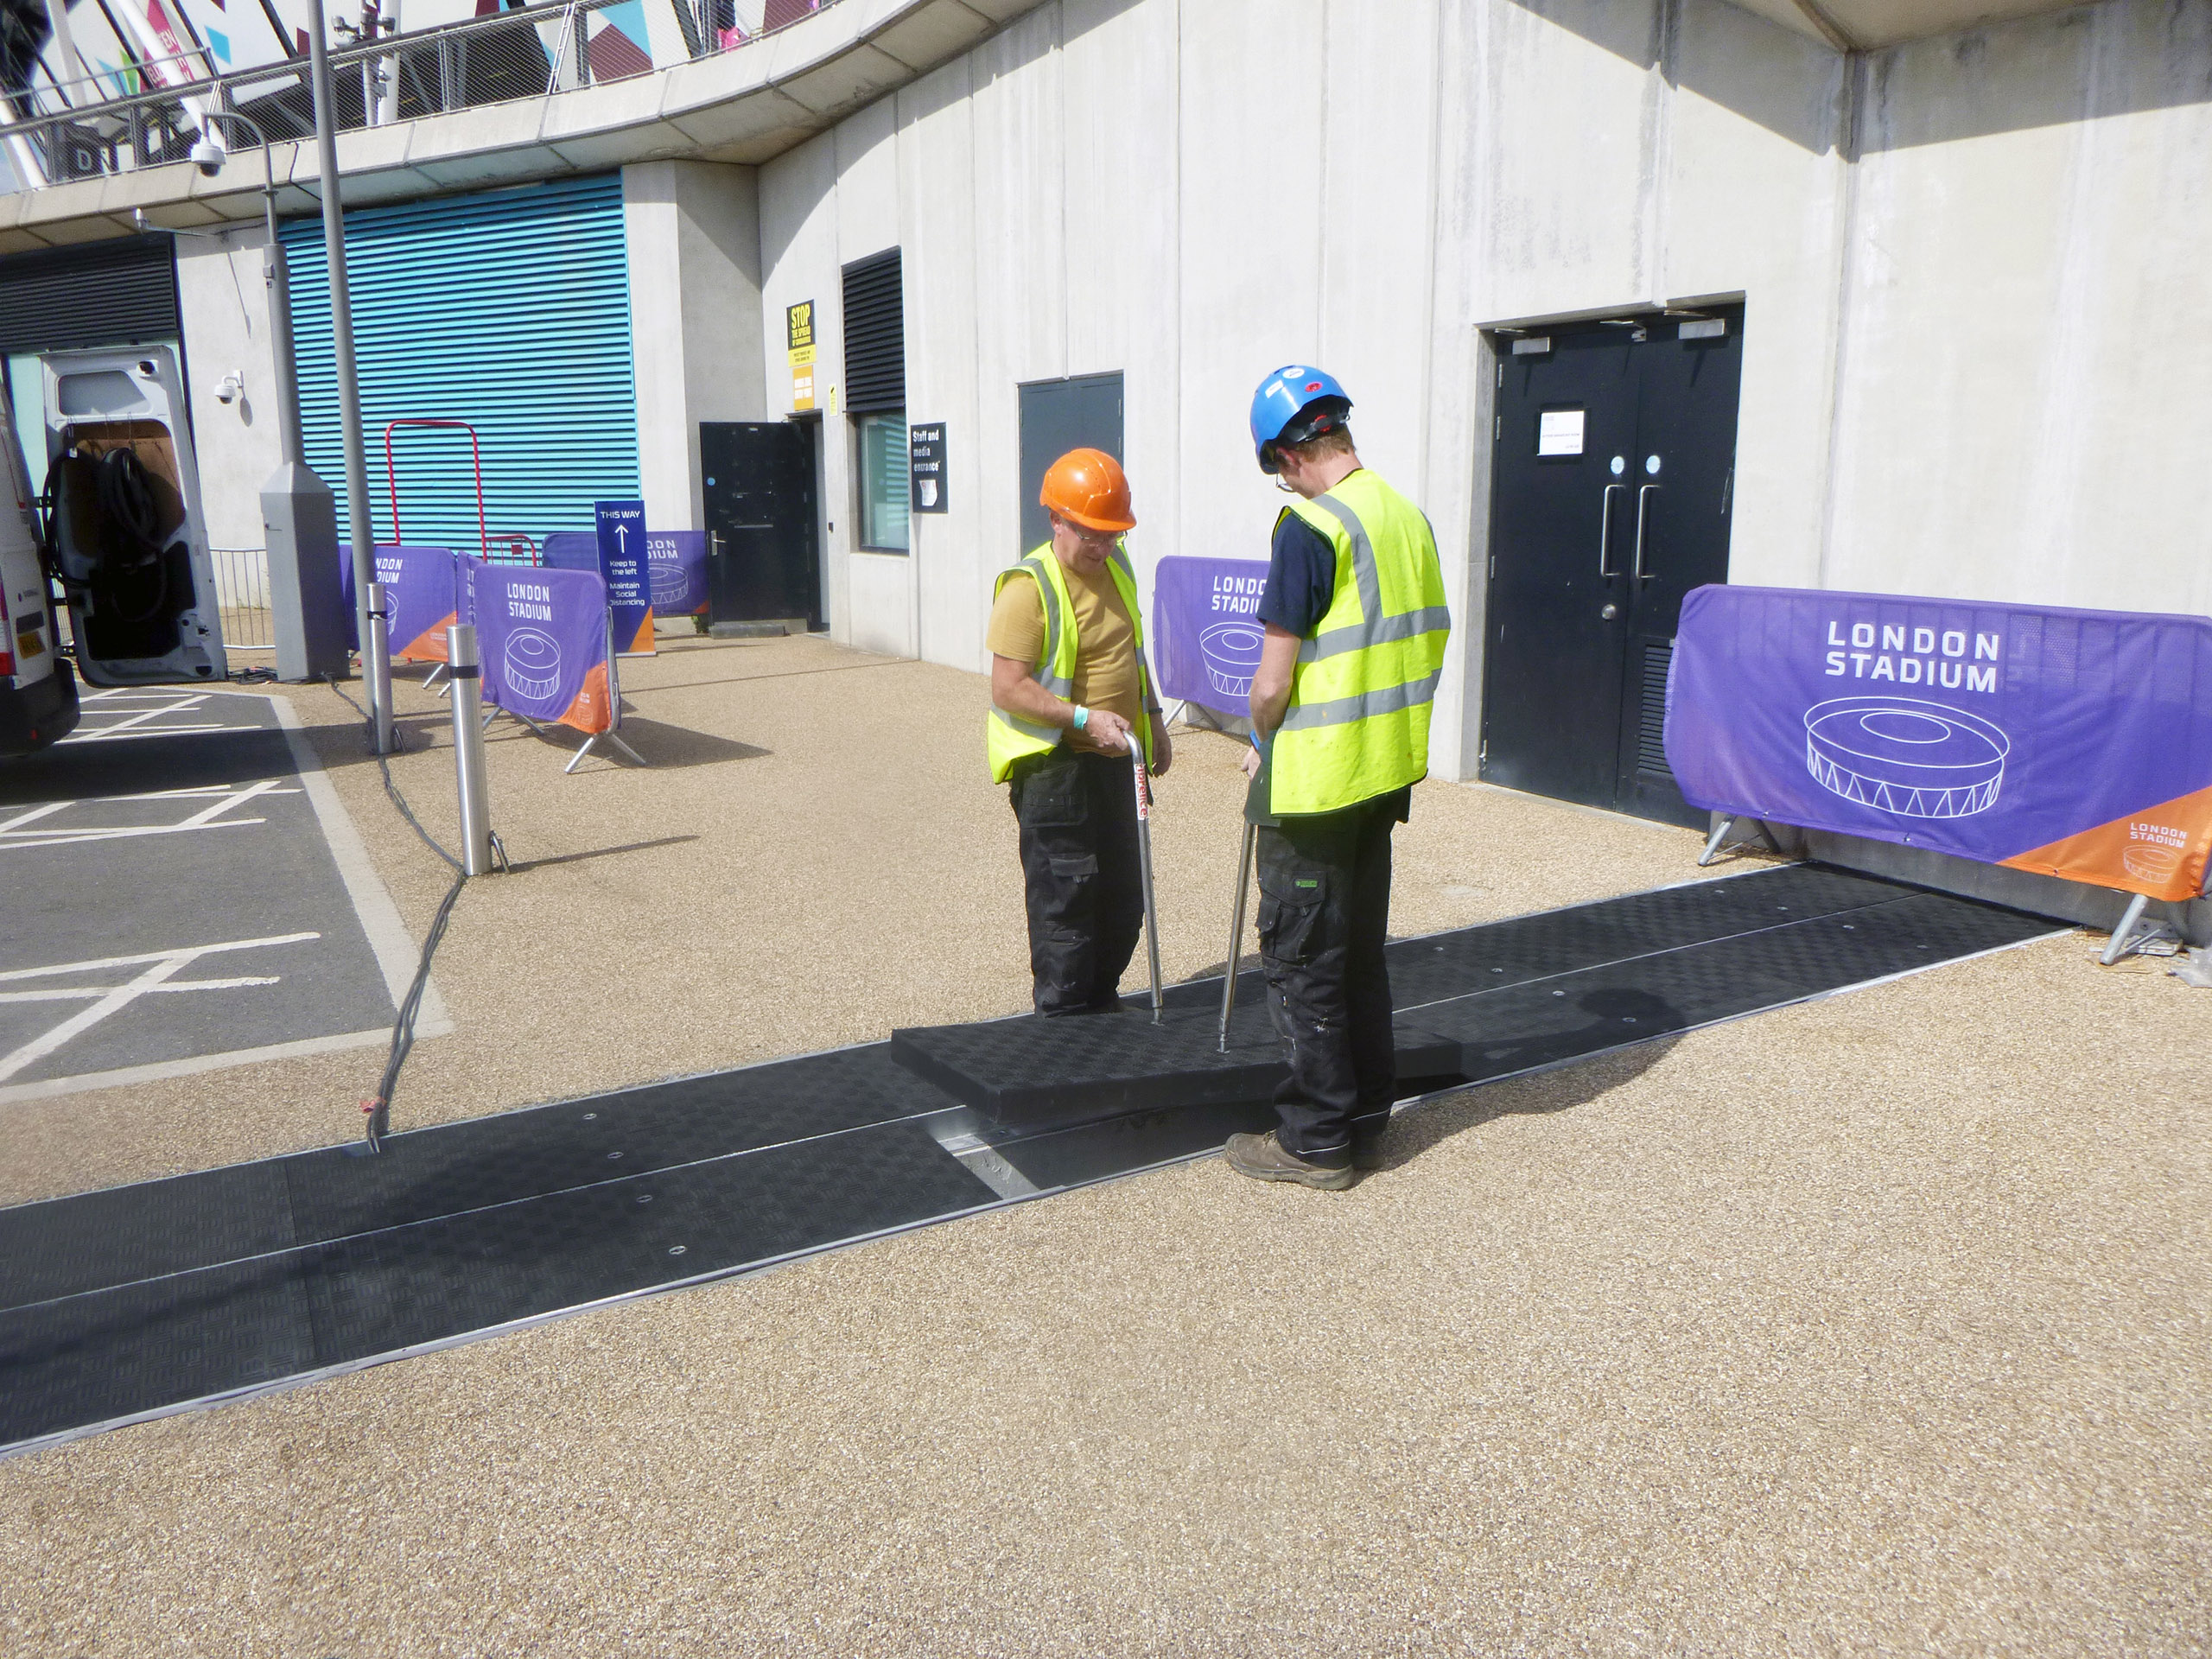 Fibrelite composite trench covers can be manually removed by two people using Fibrelite's FL7 lifting handles (as seen in the above image on another site)